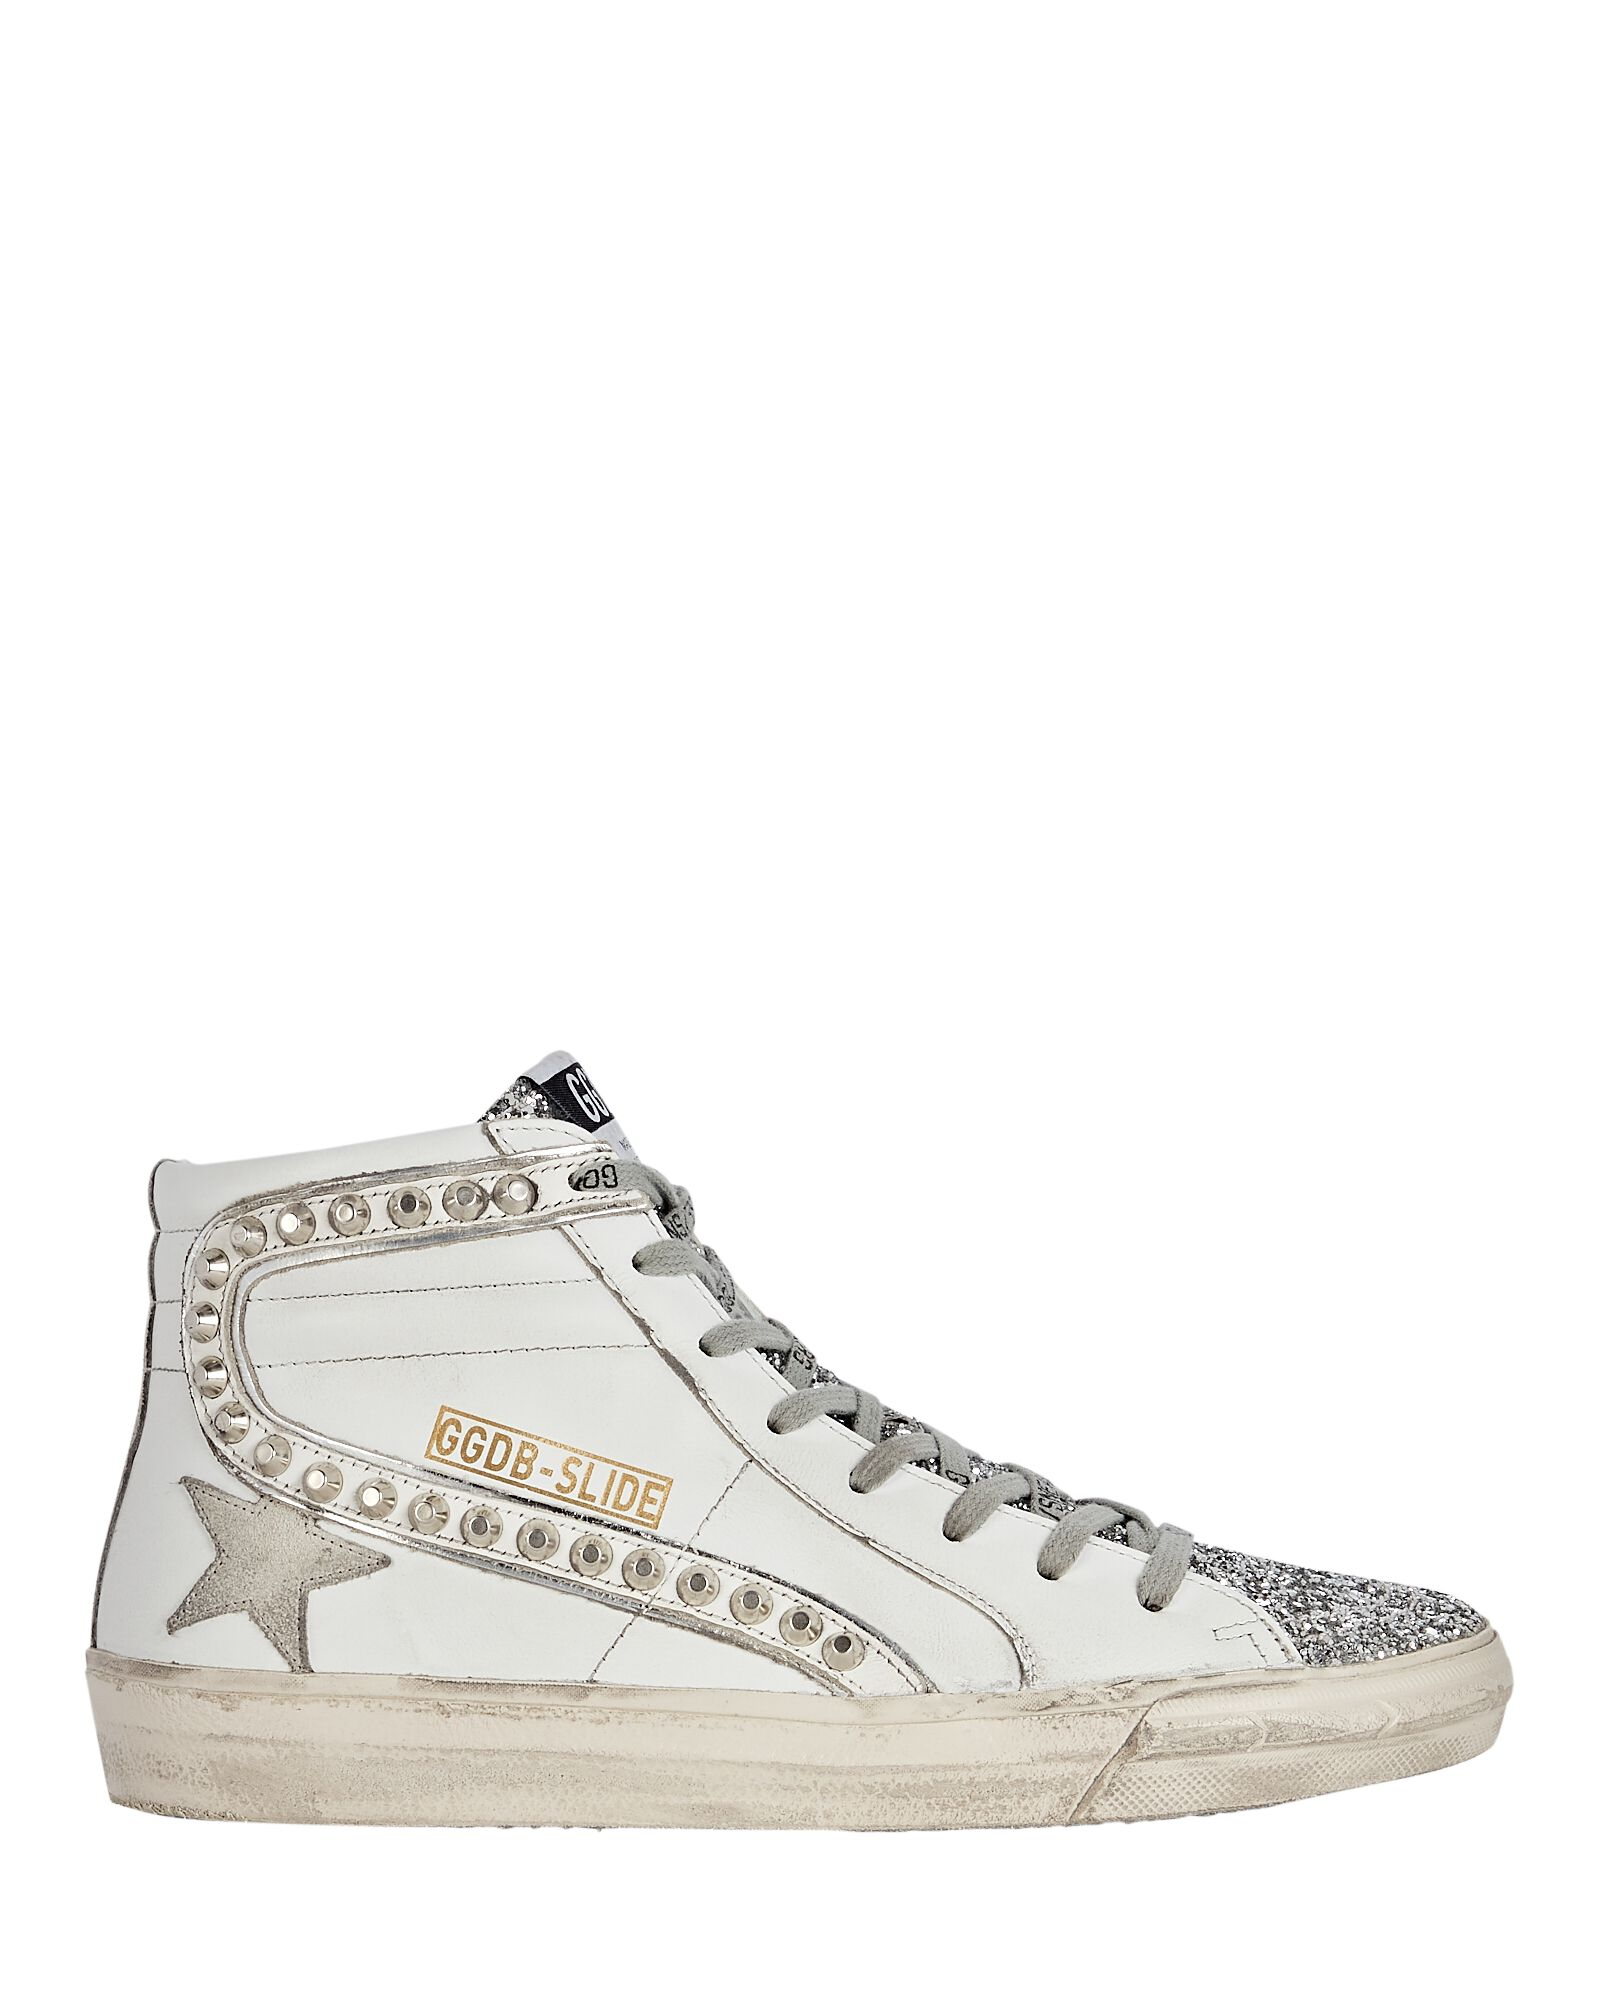 Slide Leather High-Top Sneakers, SILVER, hi-res